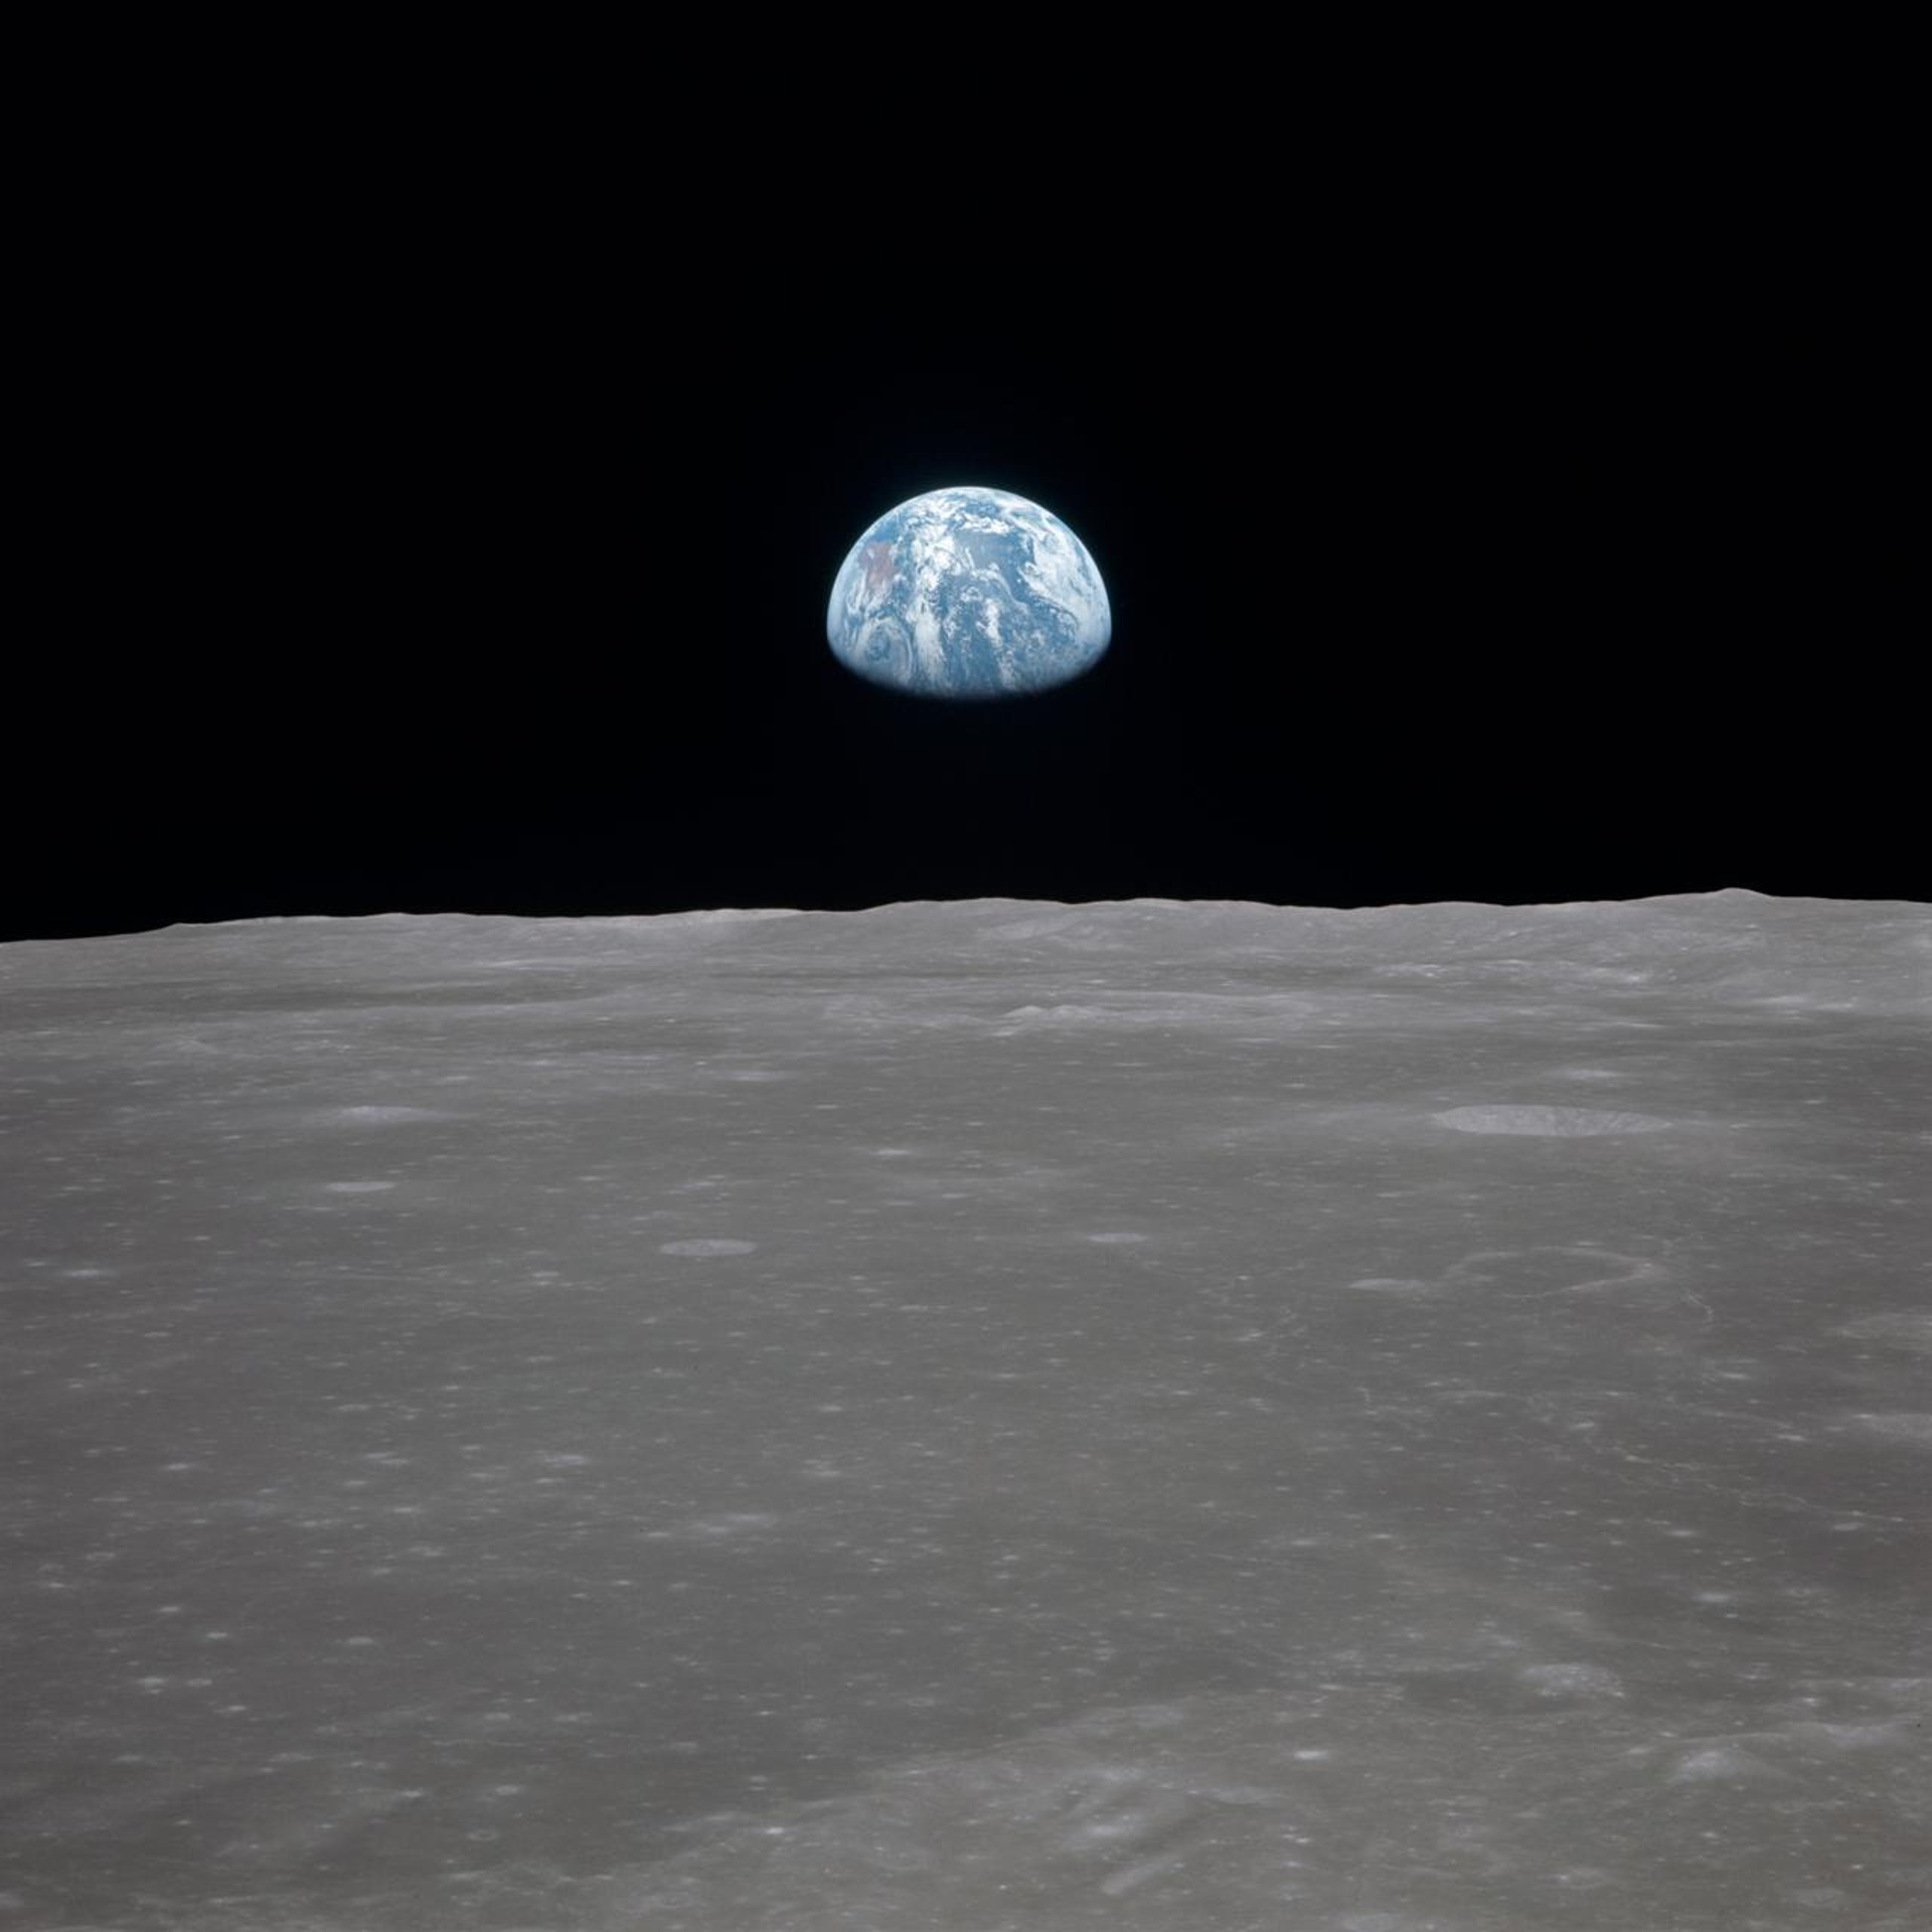 View of the moon with Earth on the horizon, known as the famous Earthrise photo. This image was taken before separation of the lunar module and the command module during Apollo 11 Mission in July 1969.